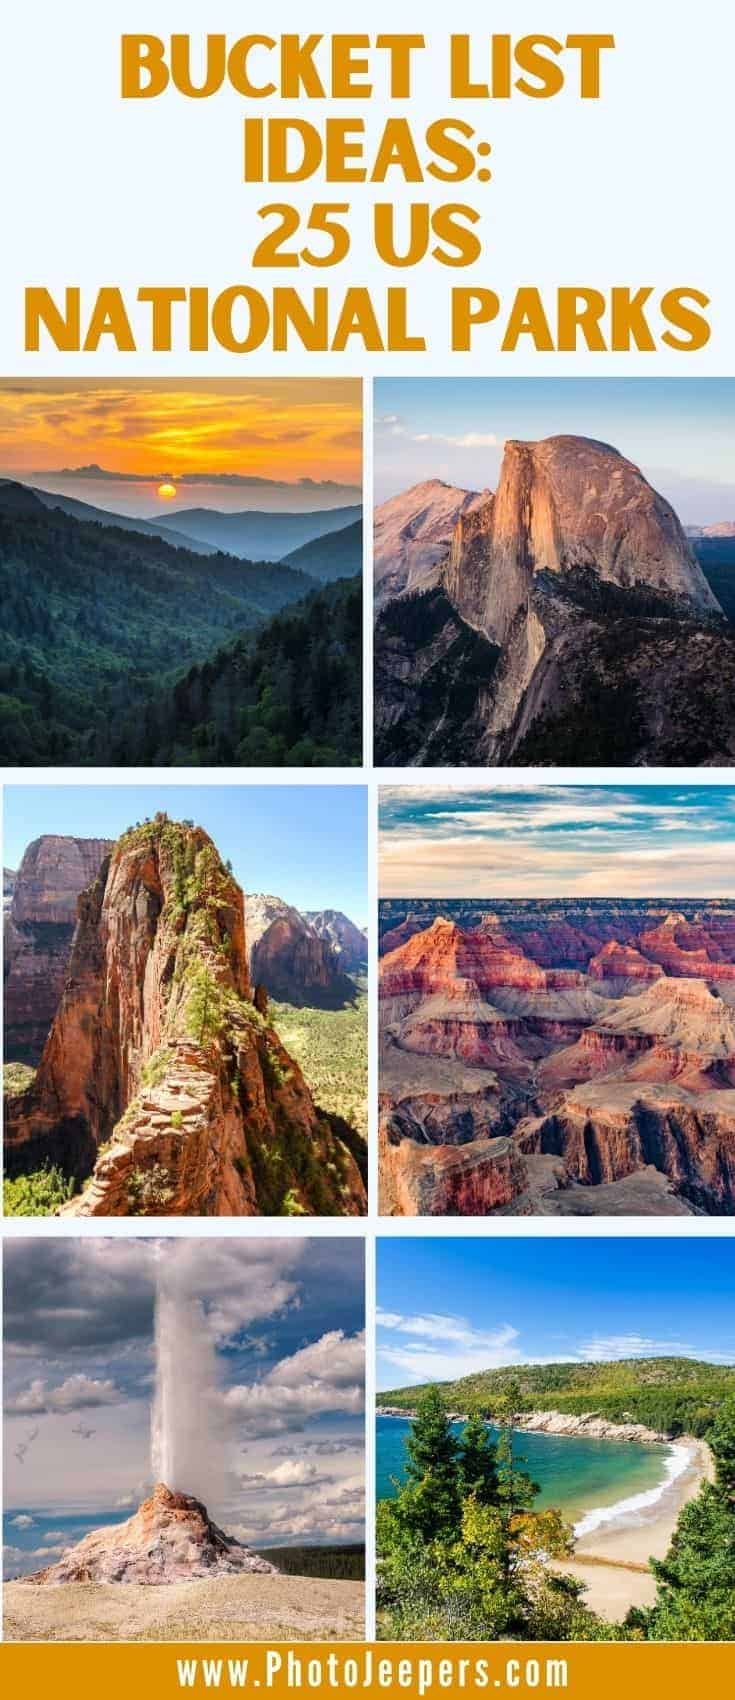 Bucket list ideas: 25 US National Parks